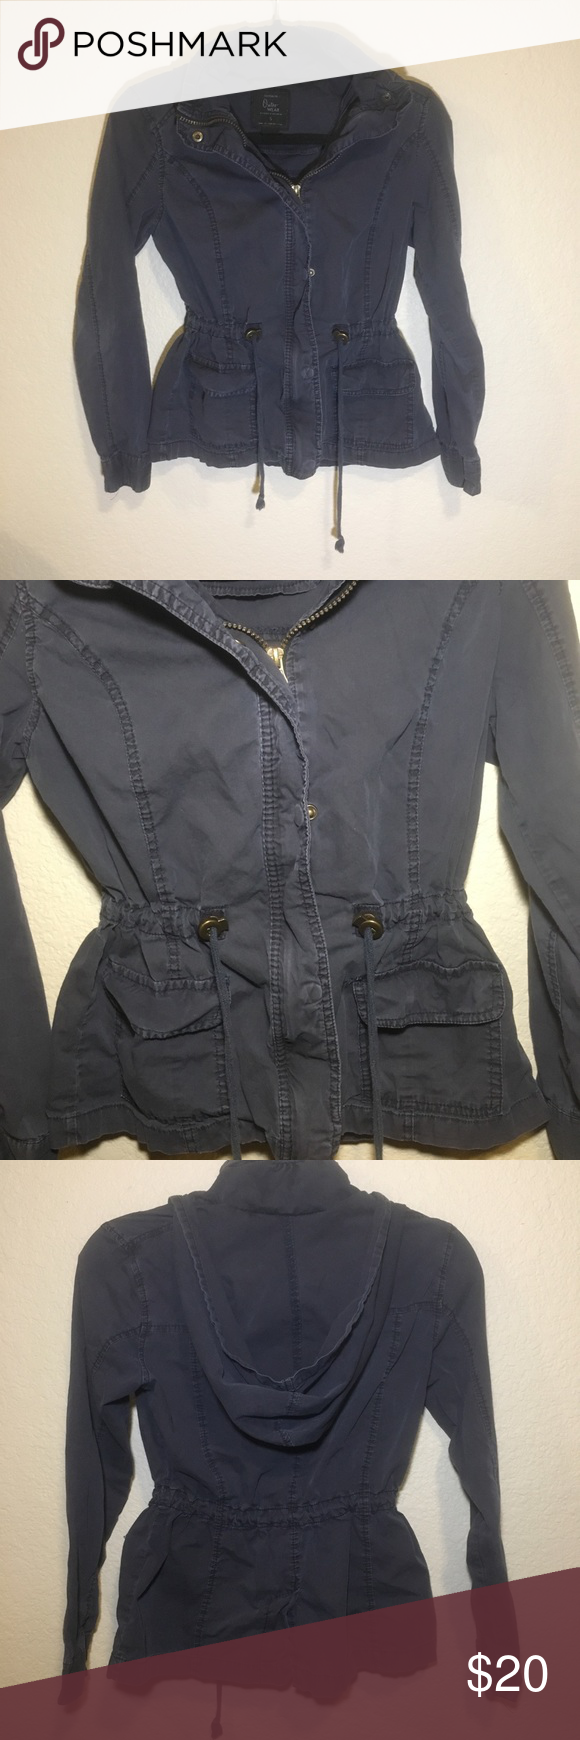 Cotton On Utility Outerwear Navy Jacket Pre Owned Still In Great Condition Please Check Pictures Details Cotton On Utility Navy Jacket Outerwear Jackets [ 1740 x 580 Pixel ]